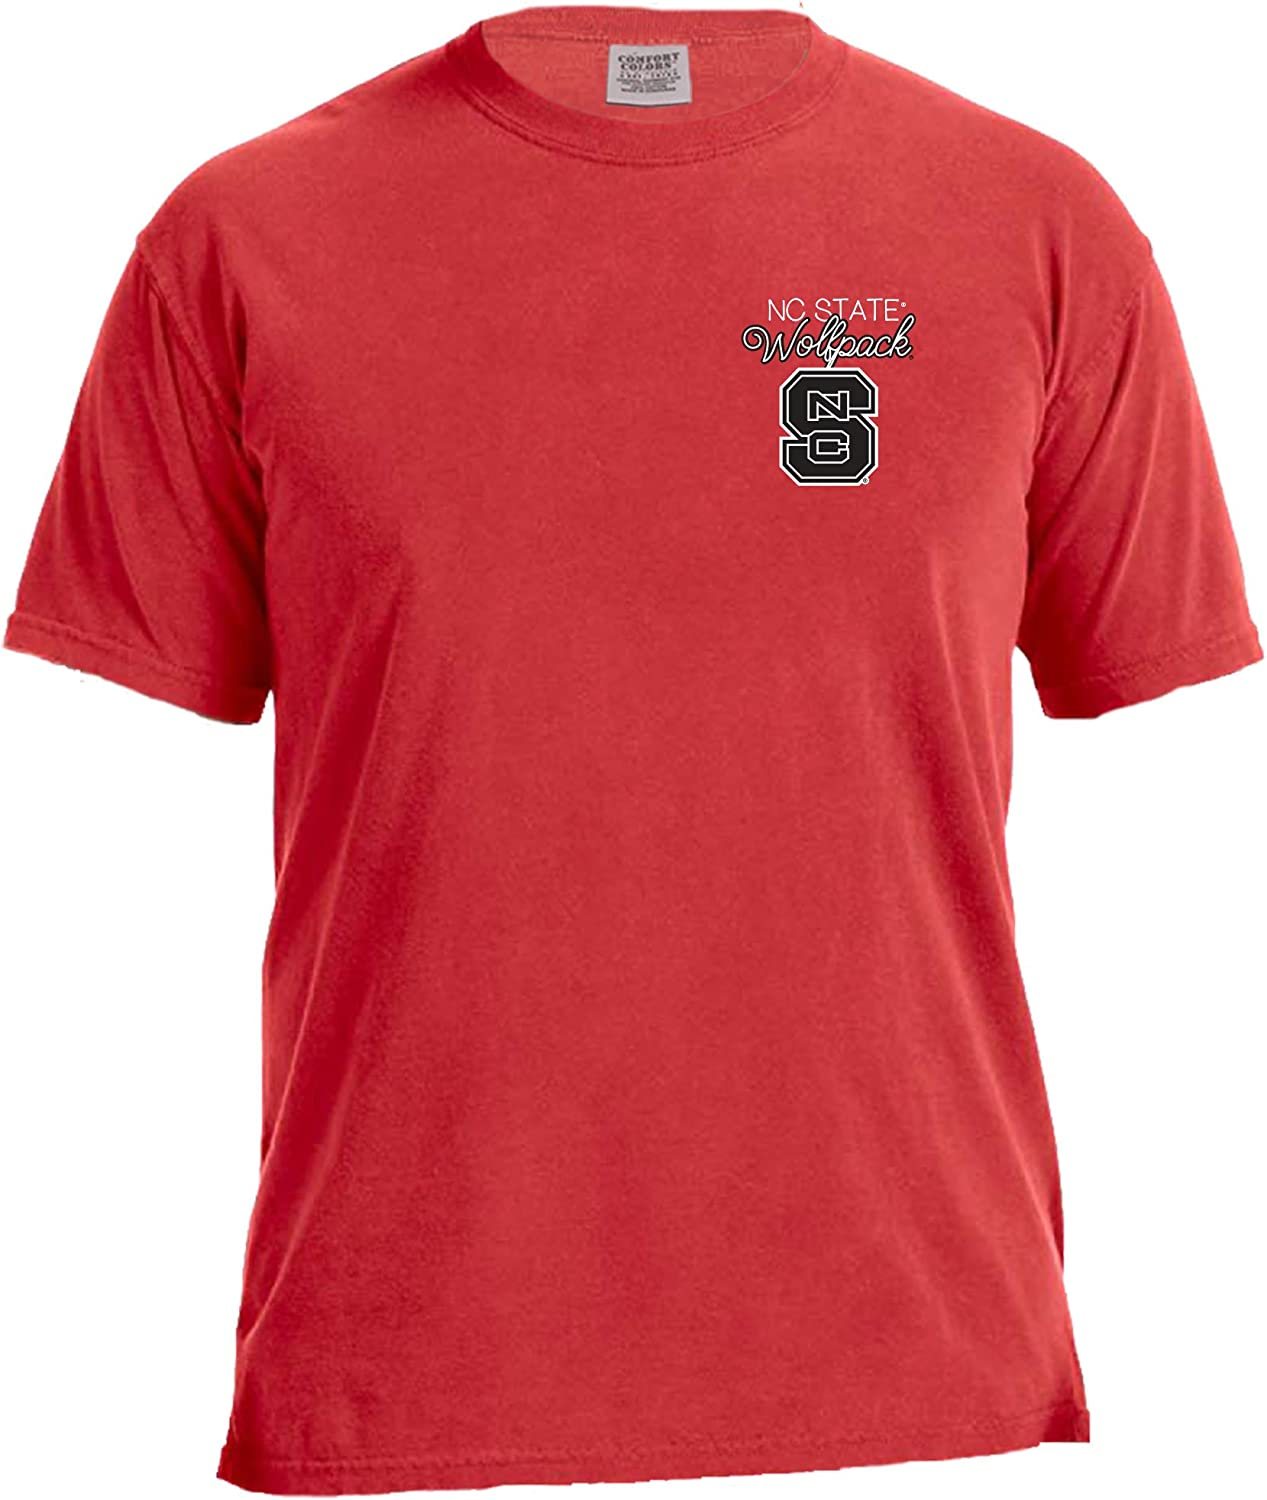 Image One NCAA Laces /& Bows Short Sleeve Comfort T-Shirt